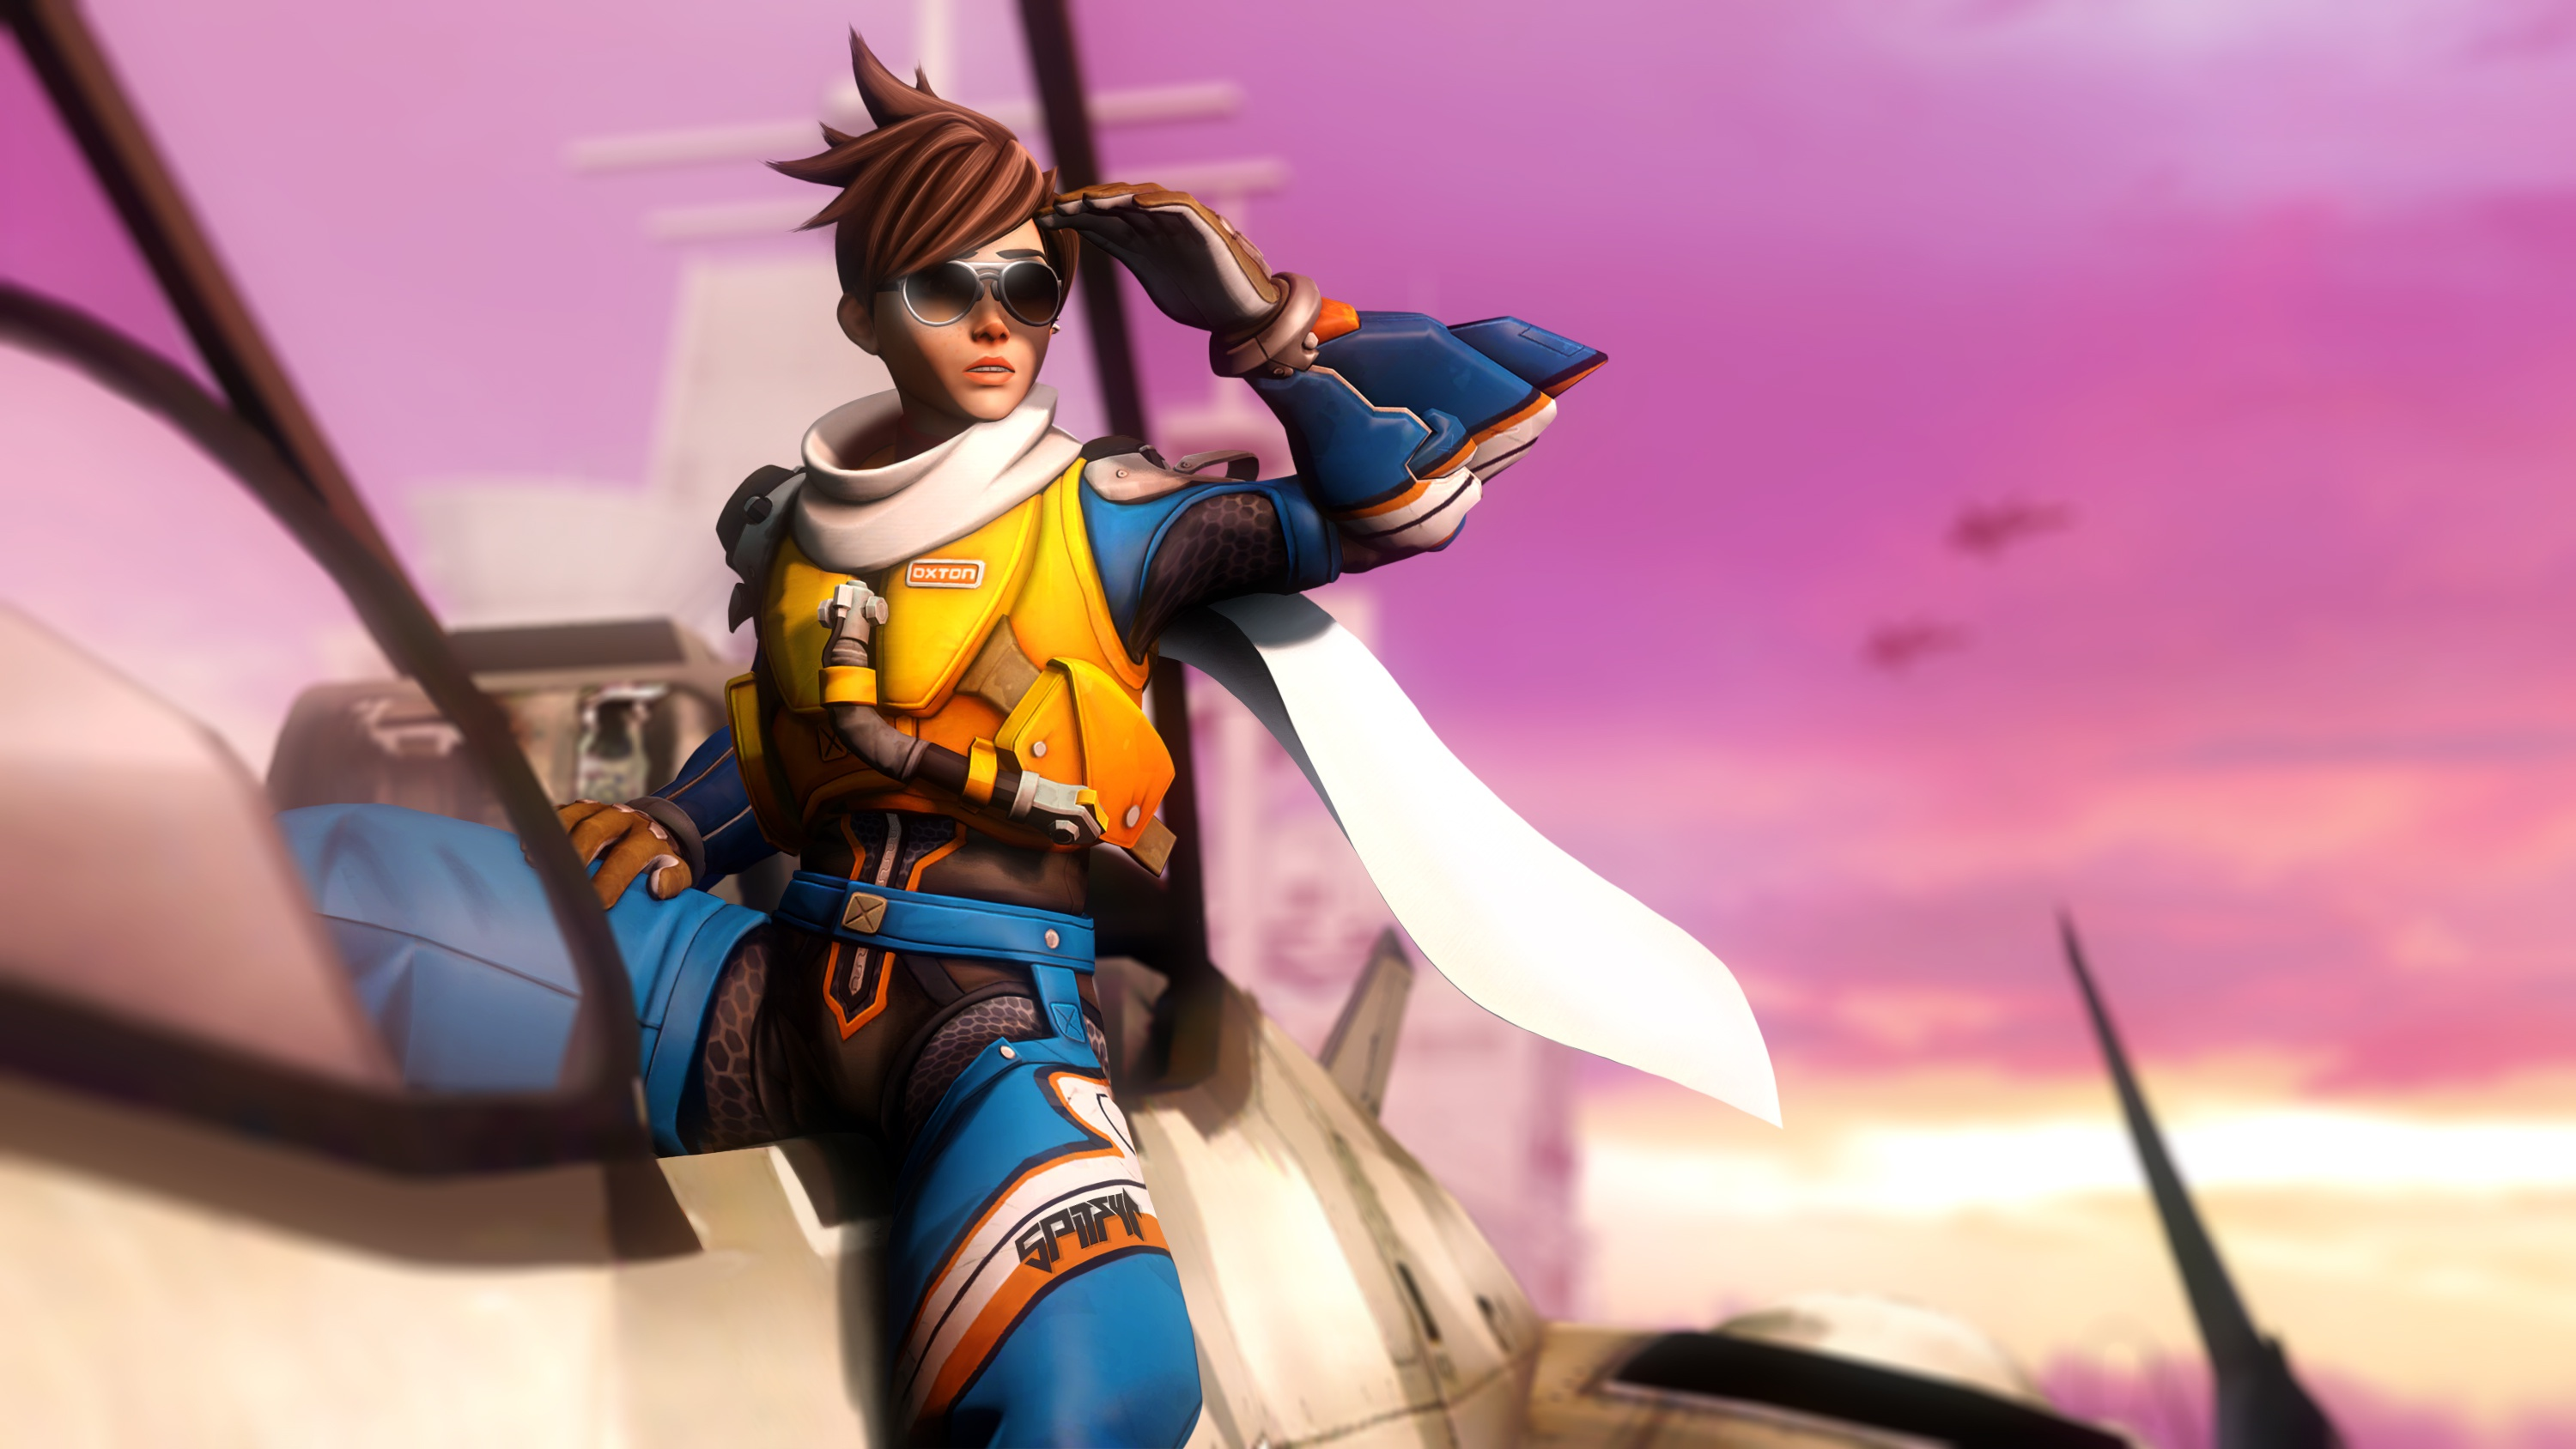 Tracer Overwatch Video Game | Games HD 4k Wallpapers